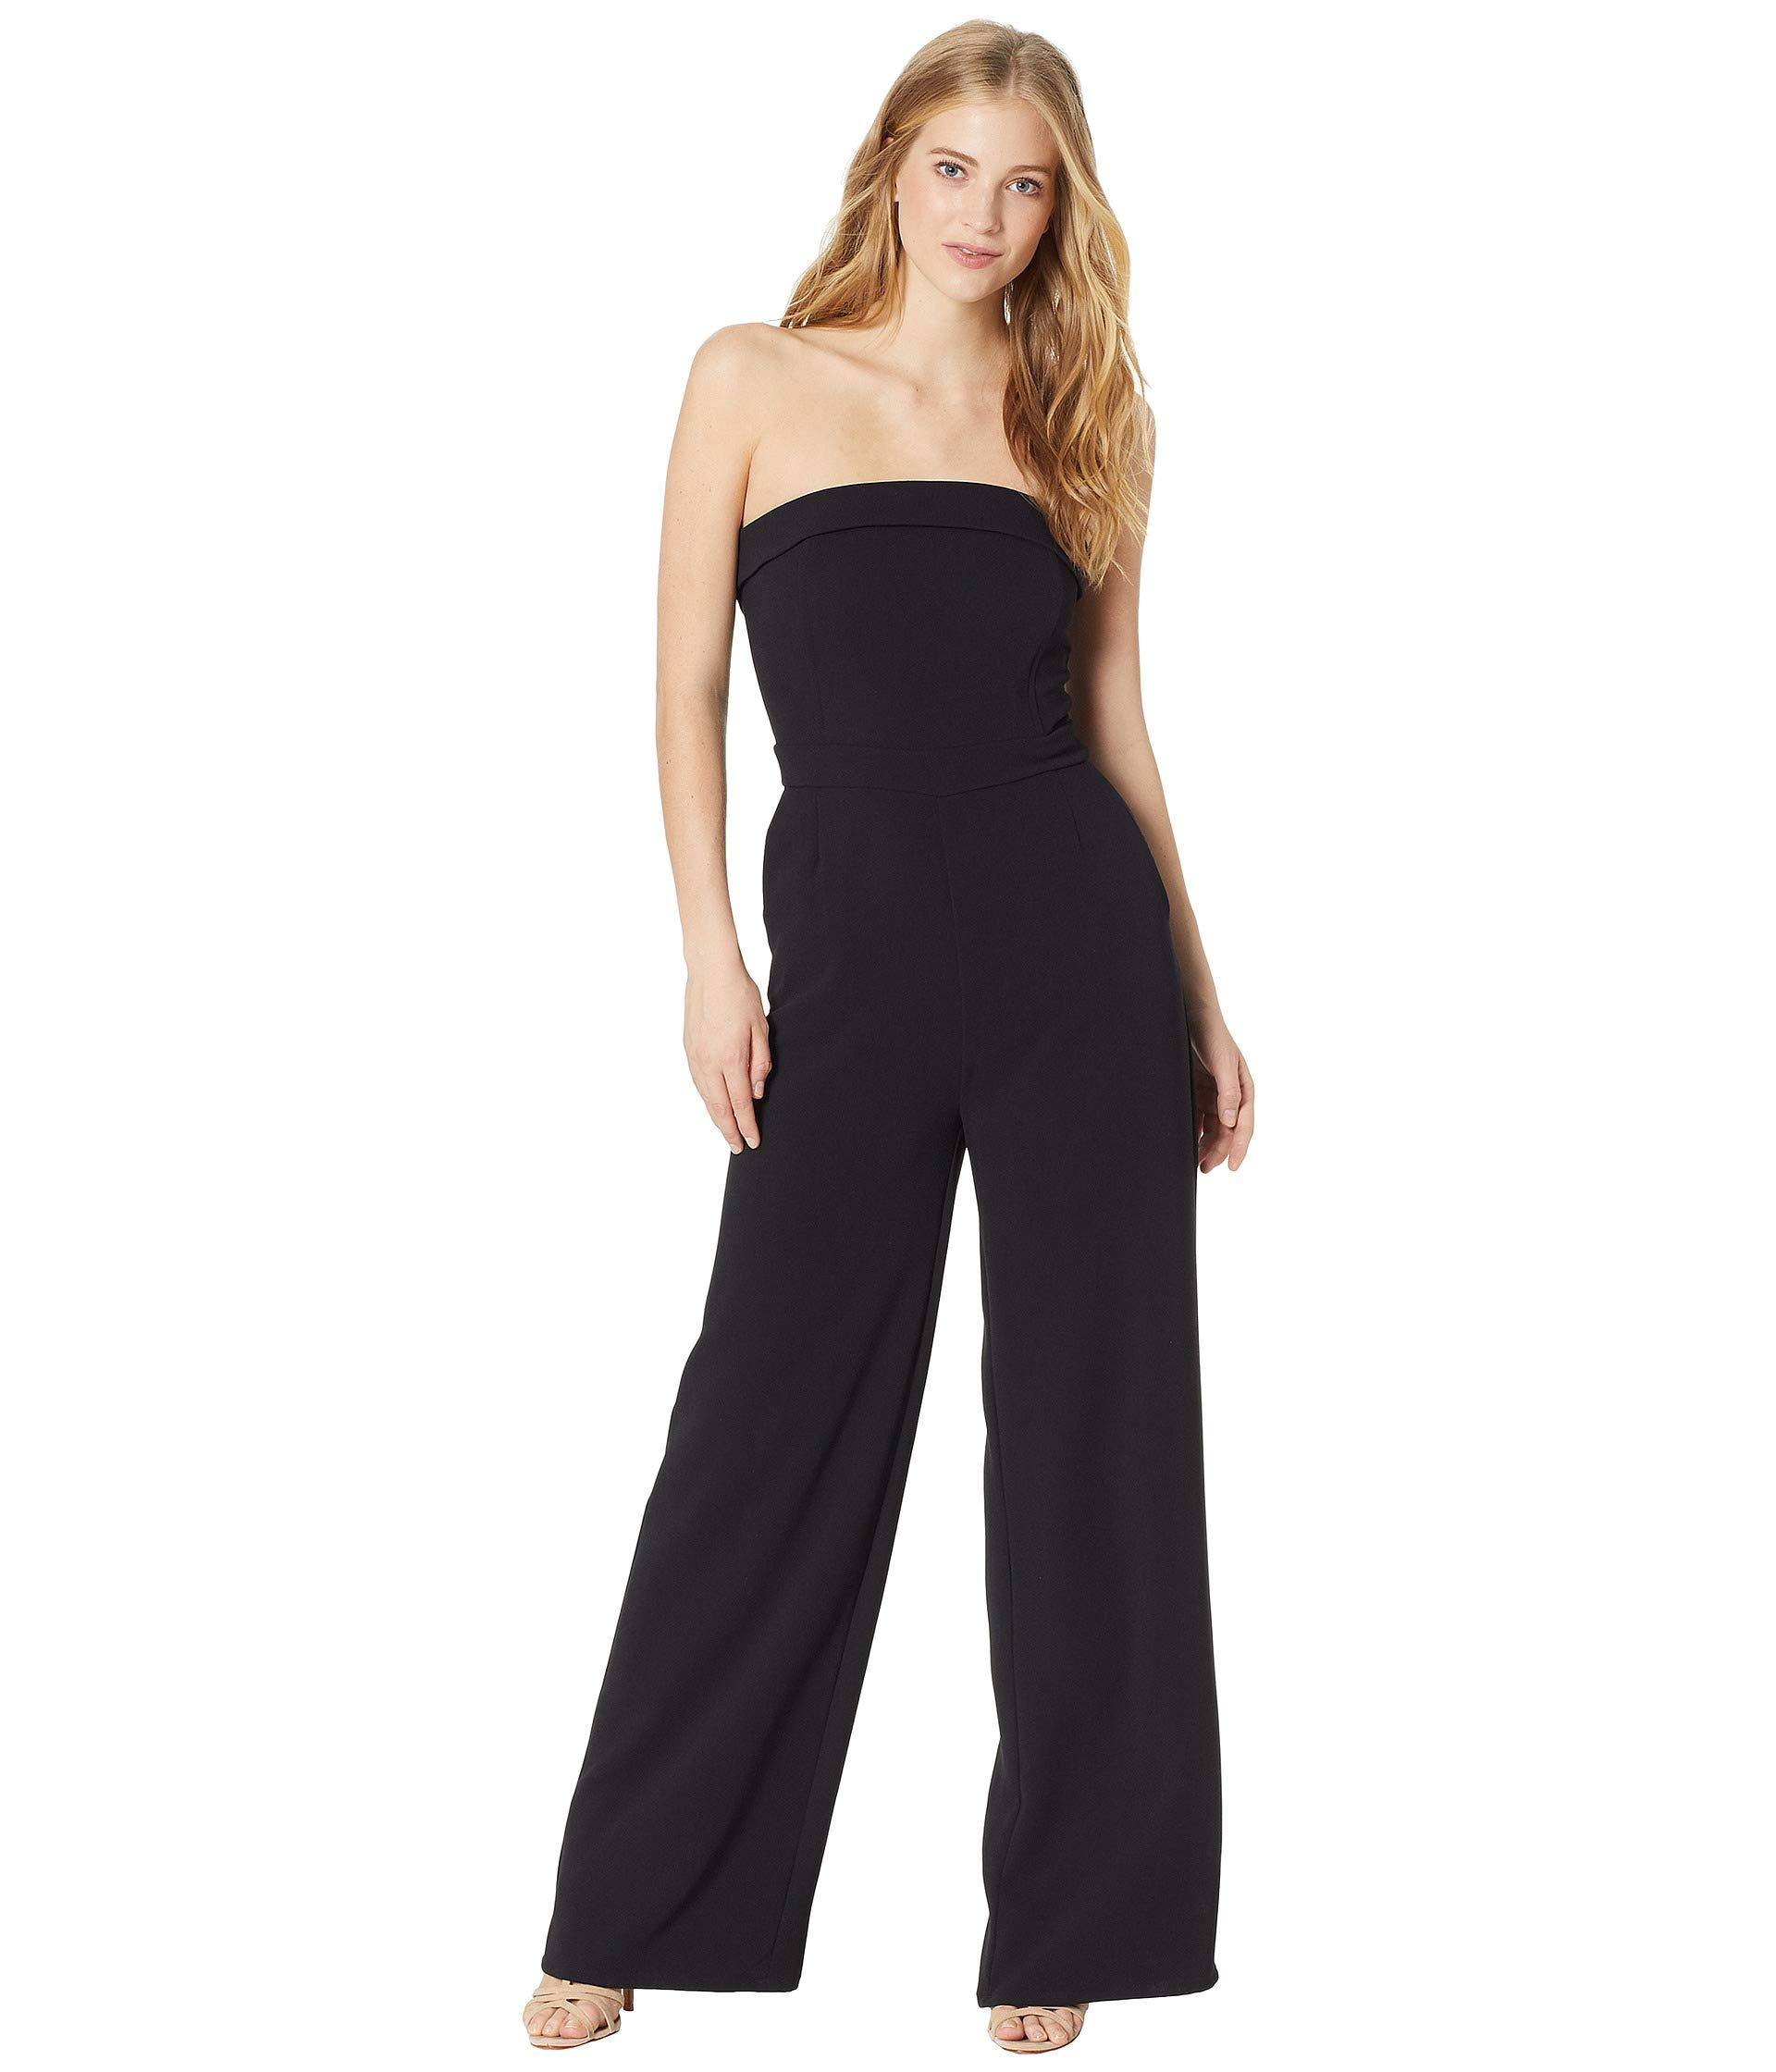 66b803243ded Lyst - Cupcakes And Cashmere Carissa Sleeveless Jumpsuit in Black ...